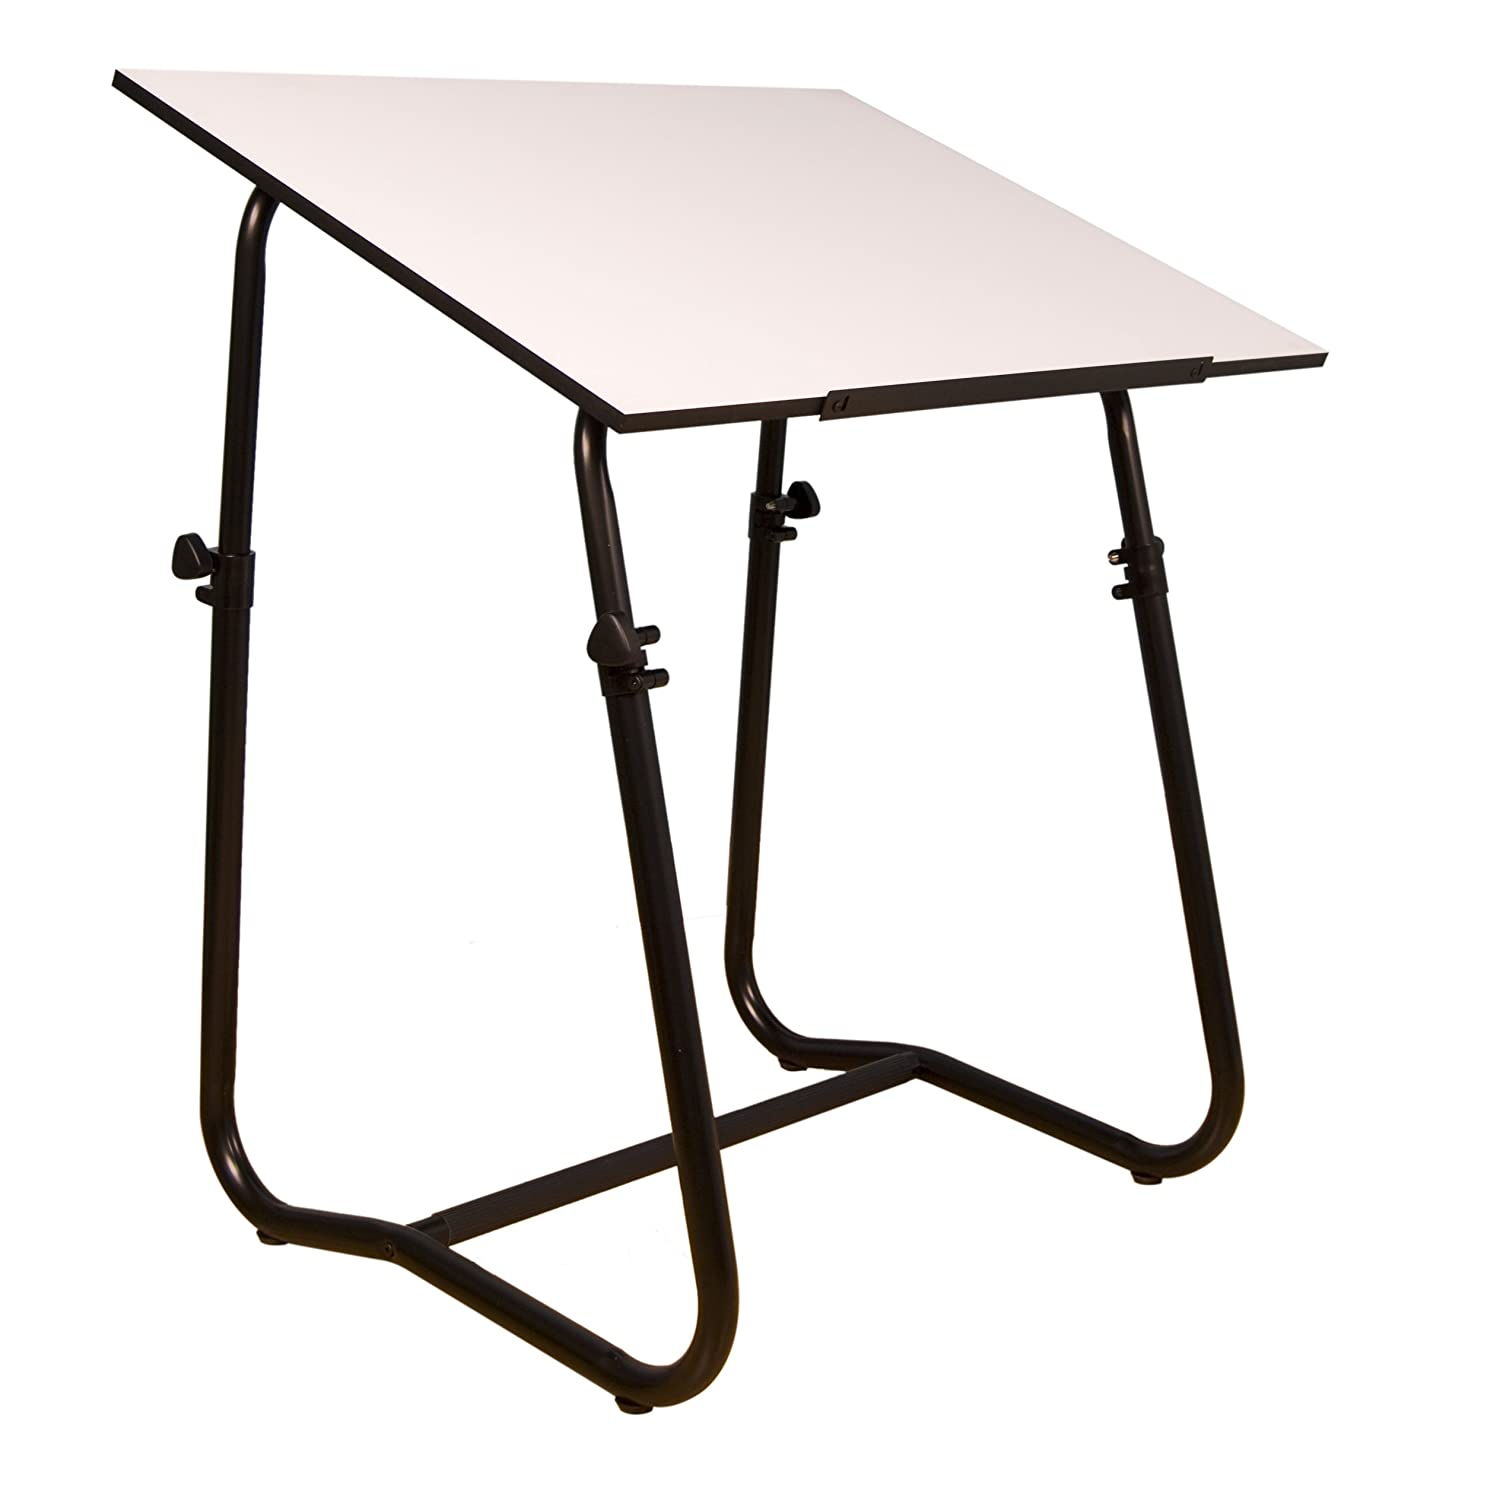 Tech Drafting Table - Black  Base harman kardon onyx studio 2 black